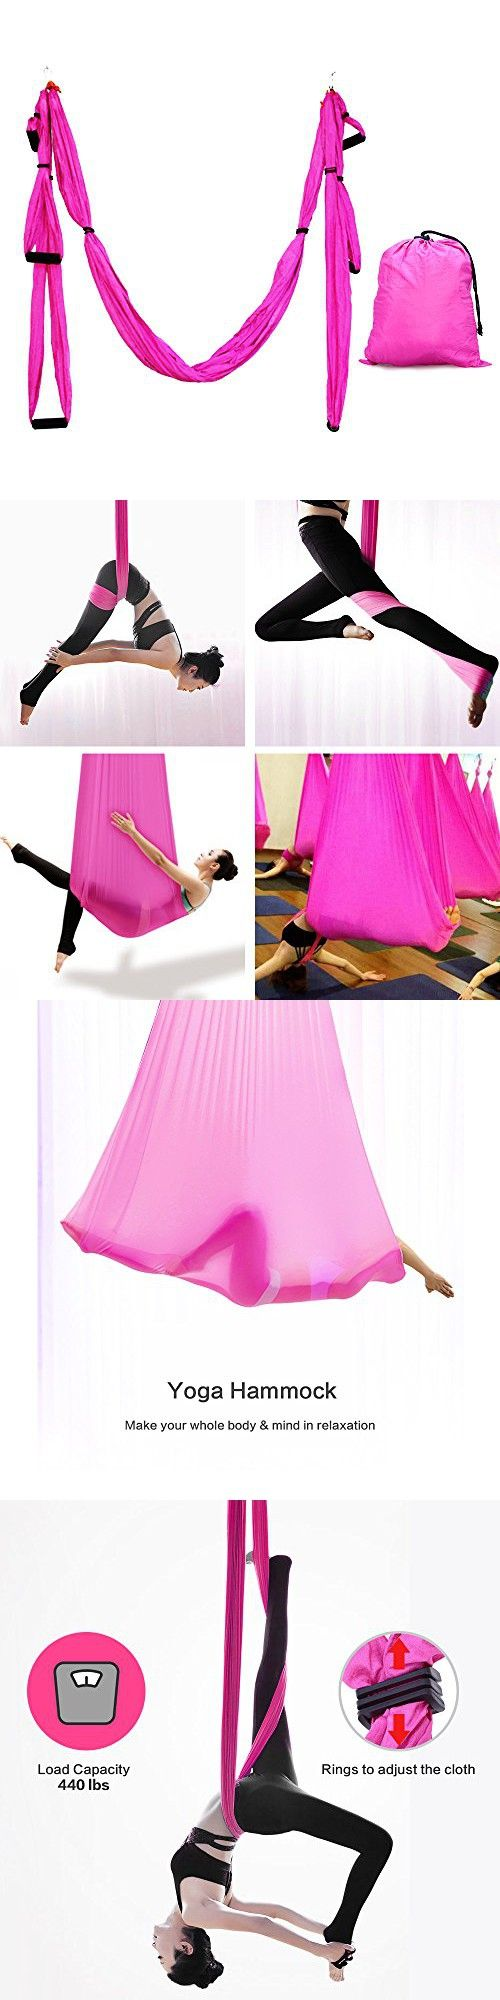 Aerial yoga swing xcat ultra strong antigravity yoga hammock with